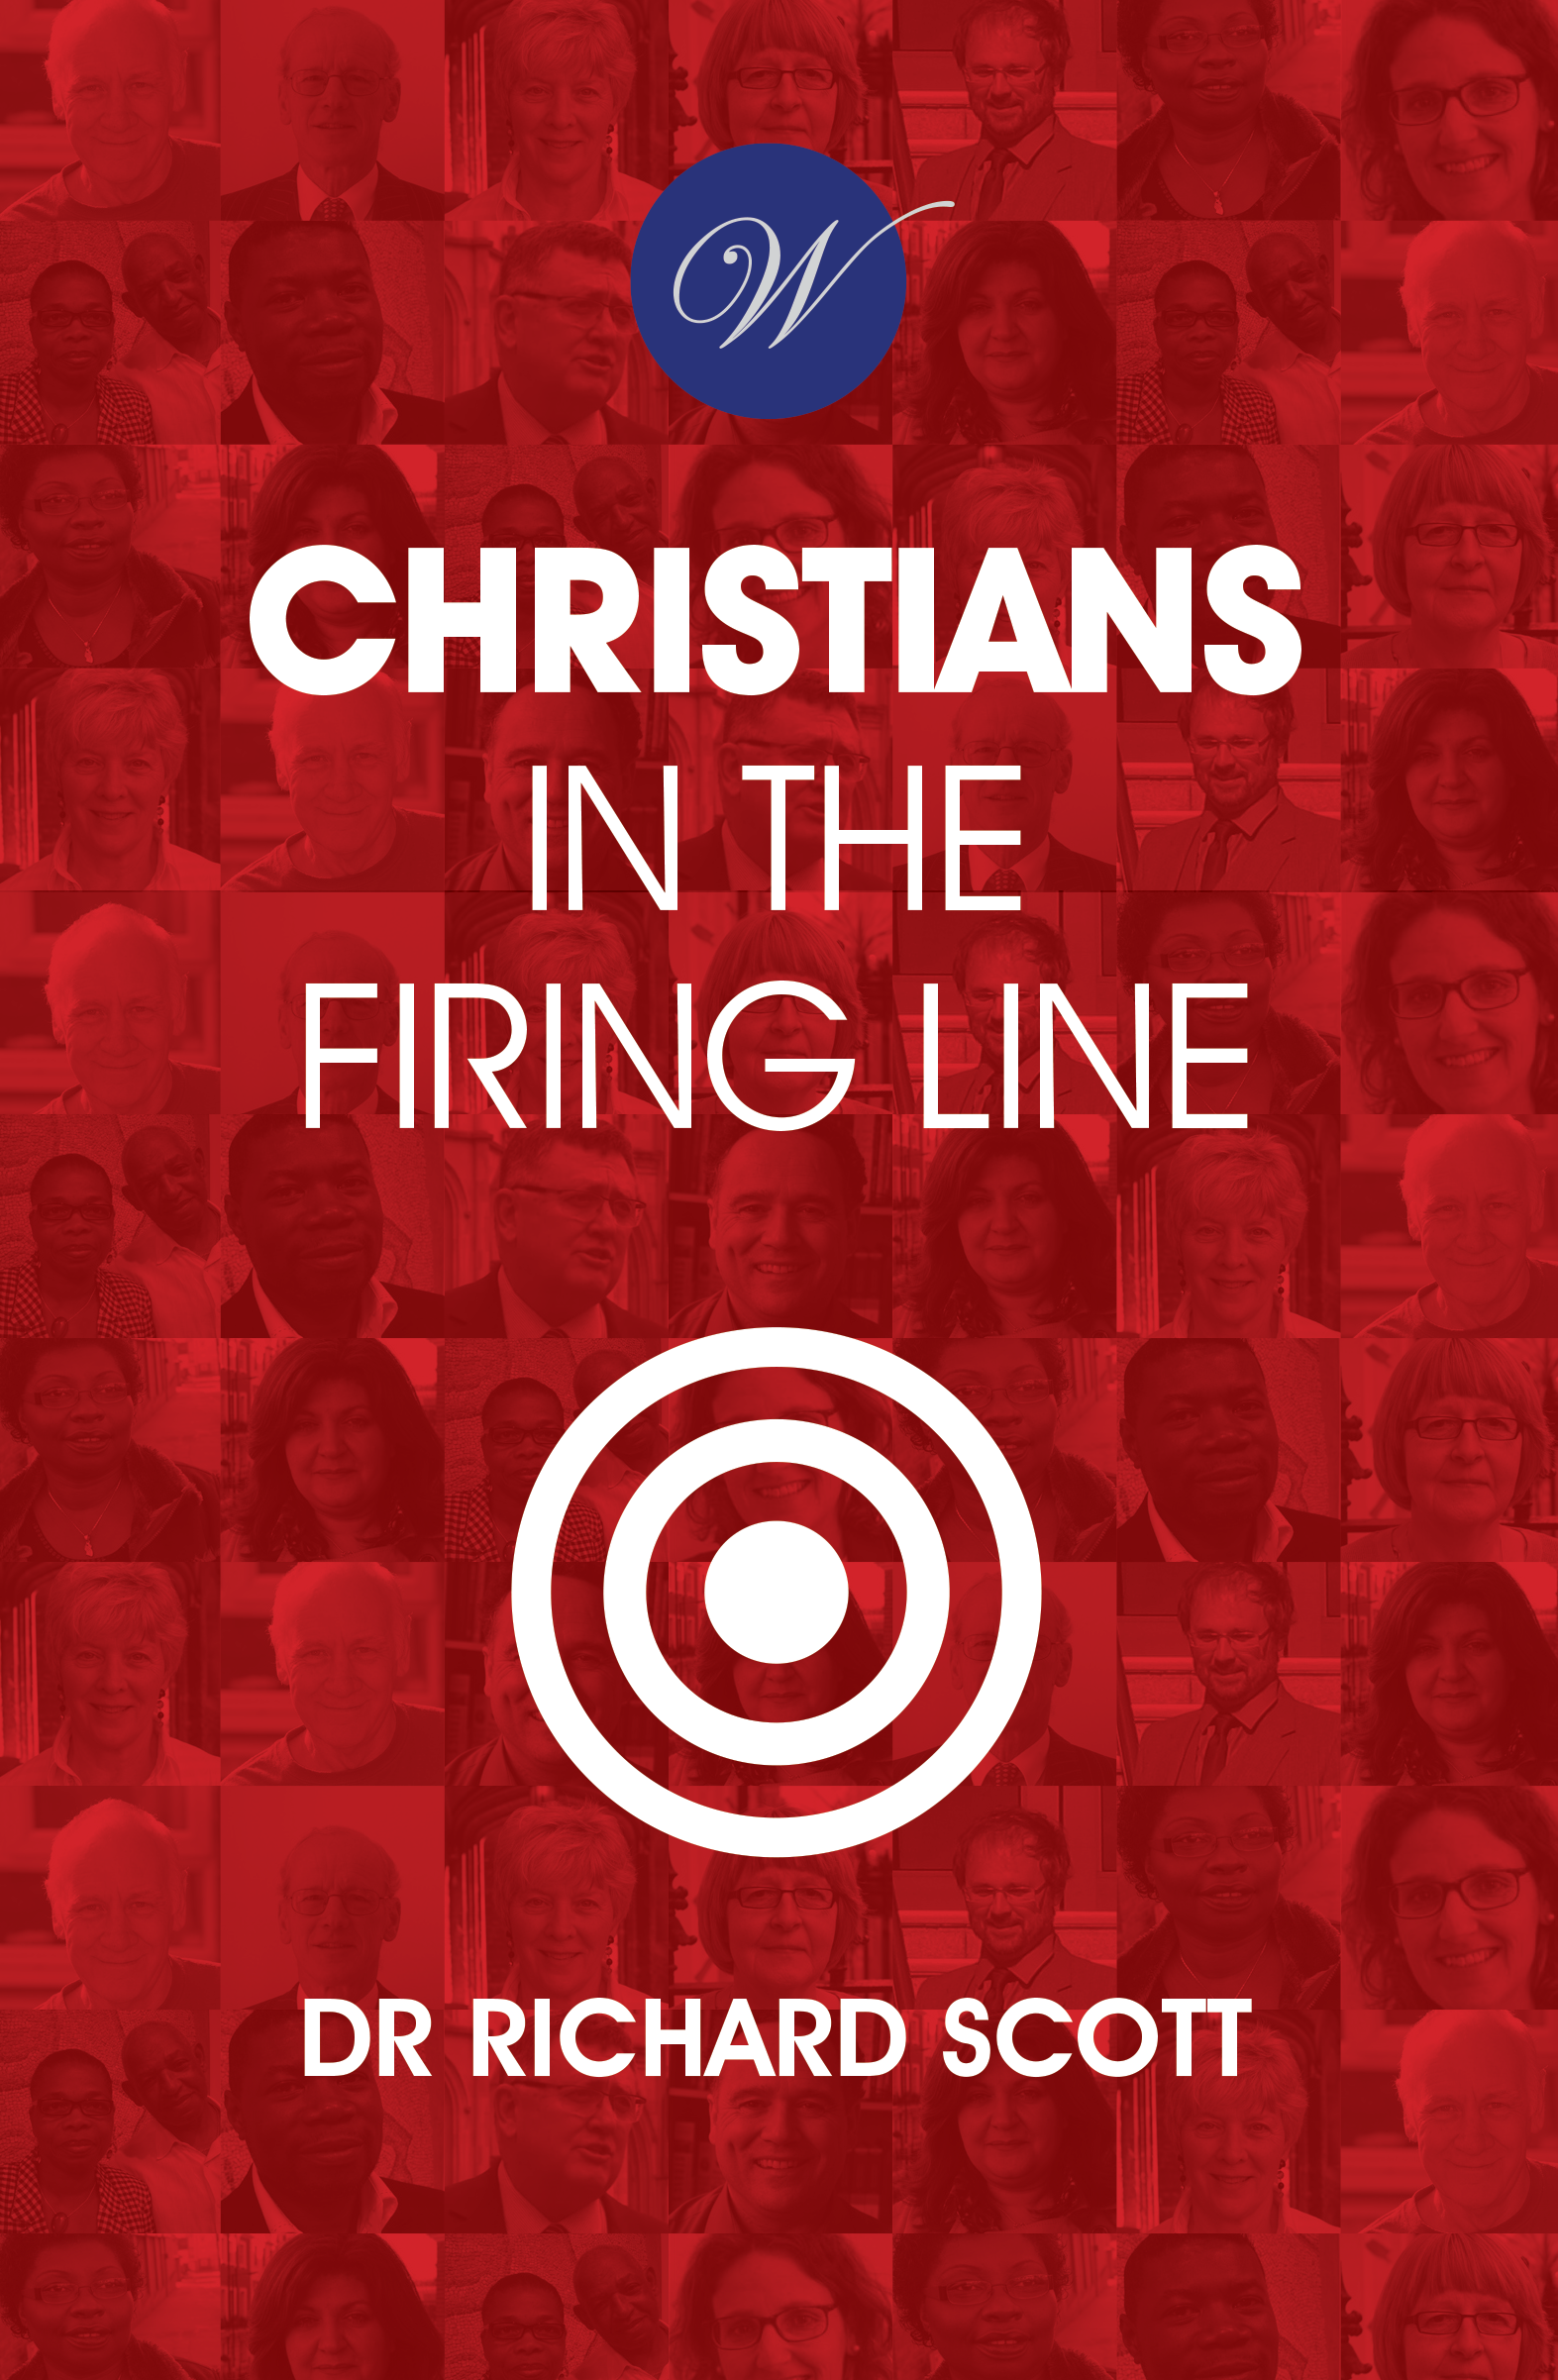 Christians In The Firing Line - The first book of UK Christians who have been in the courts for their faith